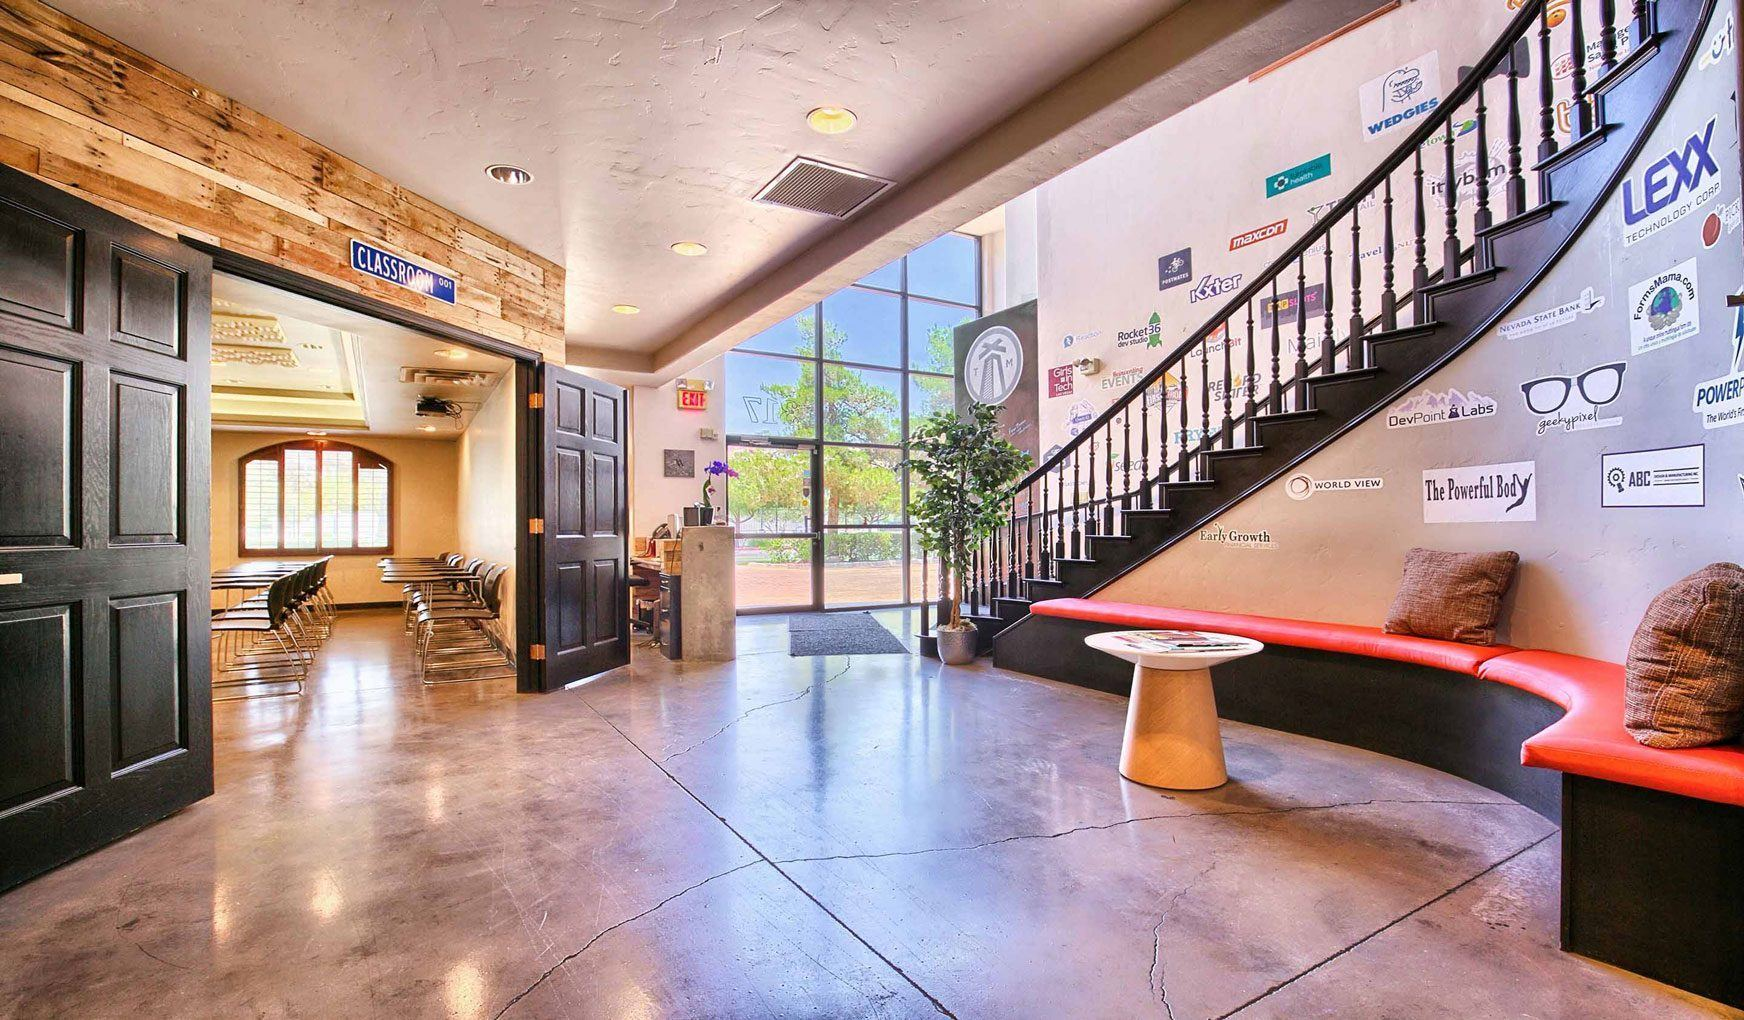 Las Vegas Coworking, Events and Meeting Space · Work in Progress